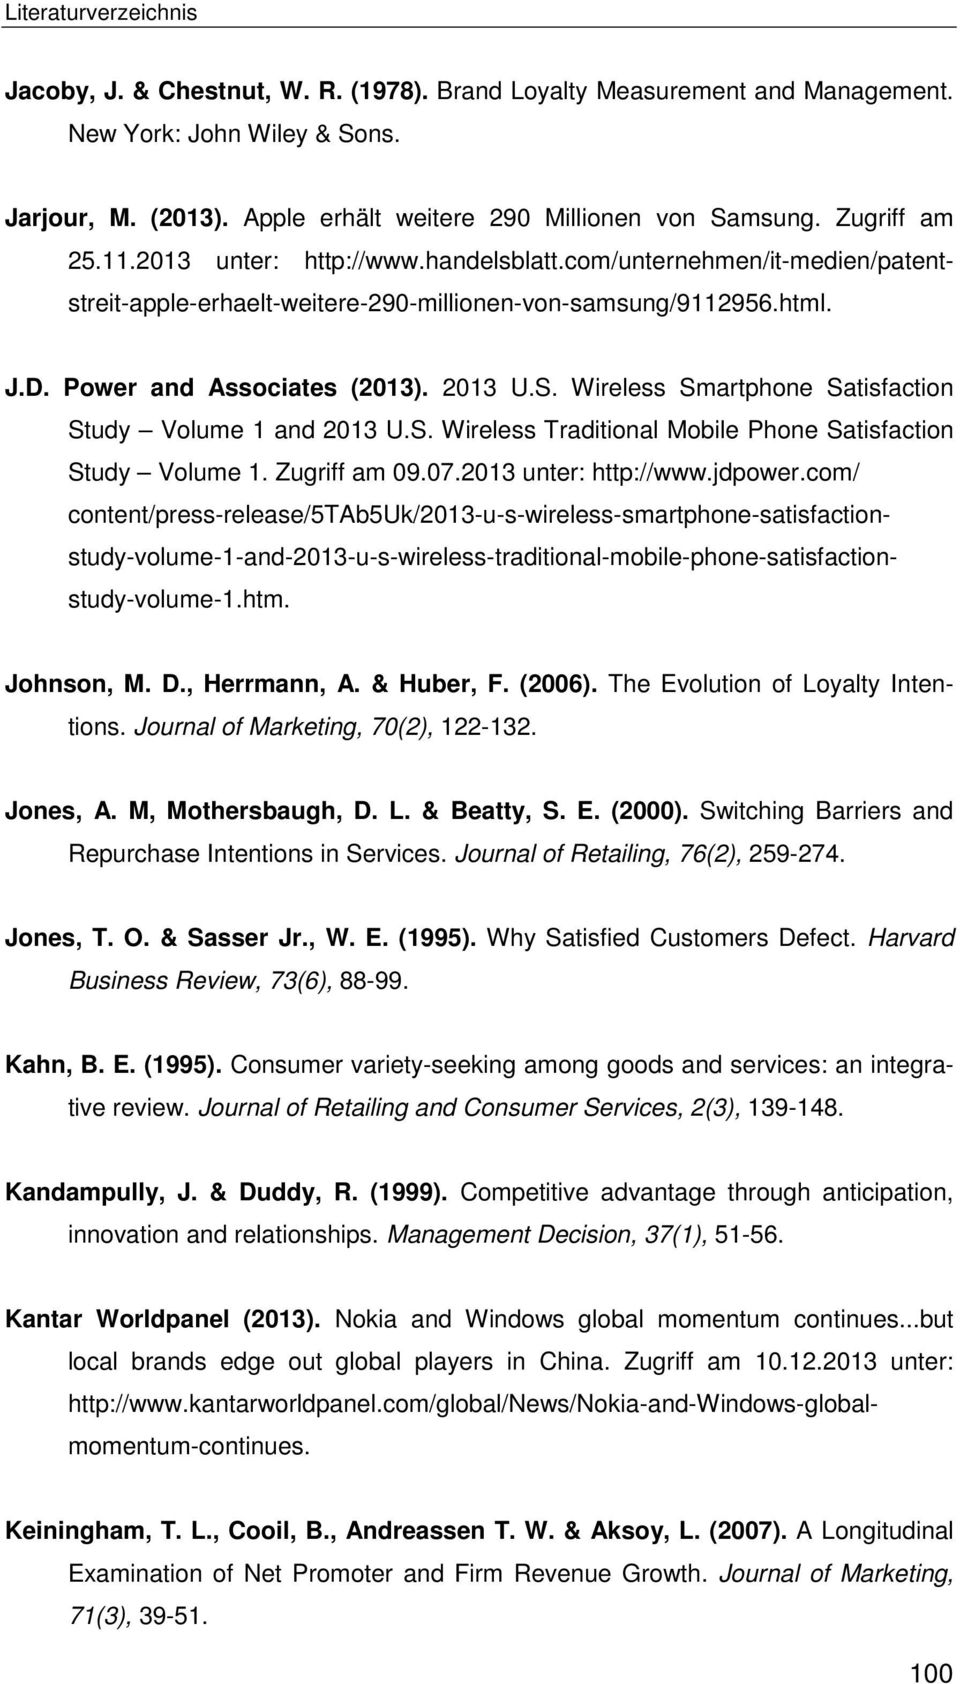 Wireless Smartphone Satisfaction Study Volume 1 and 2013 U.S. Wireless Traditional Mobile Phone Satisfaction Study Volume 1. Zugriff am 09.07.2013 unter: http://www.jdpower.